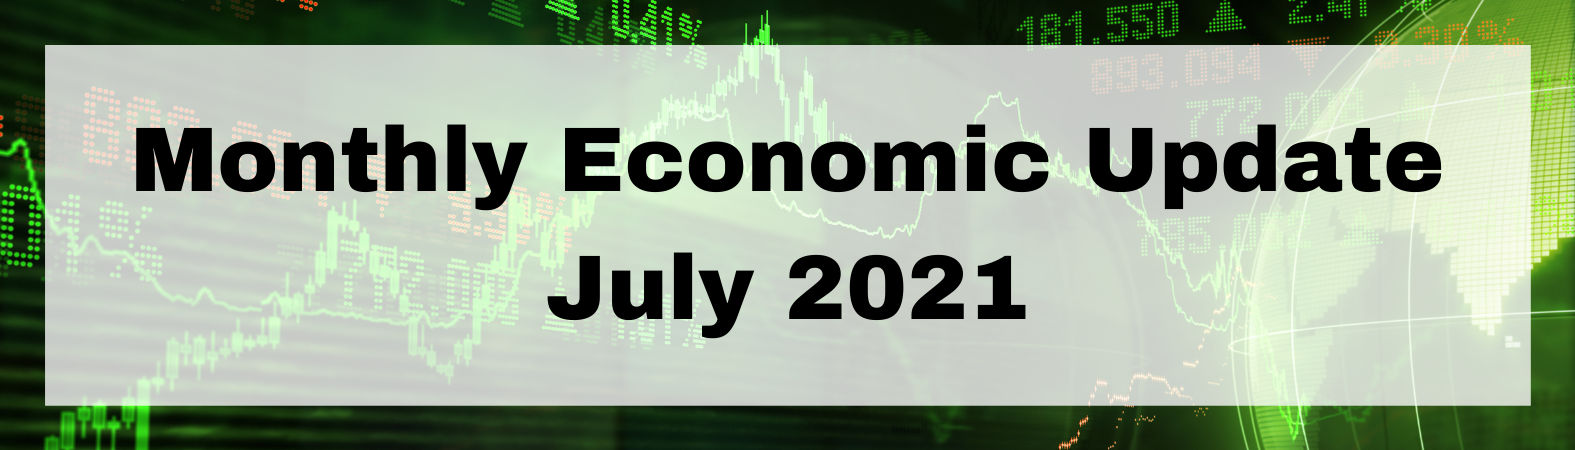 Monthly Economic Update July 2021 Thumbnail